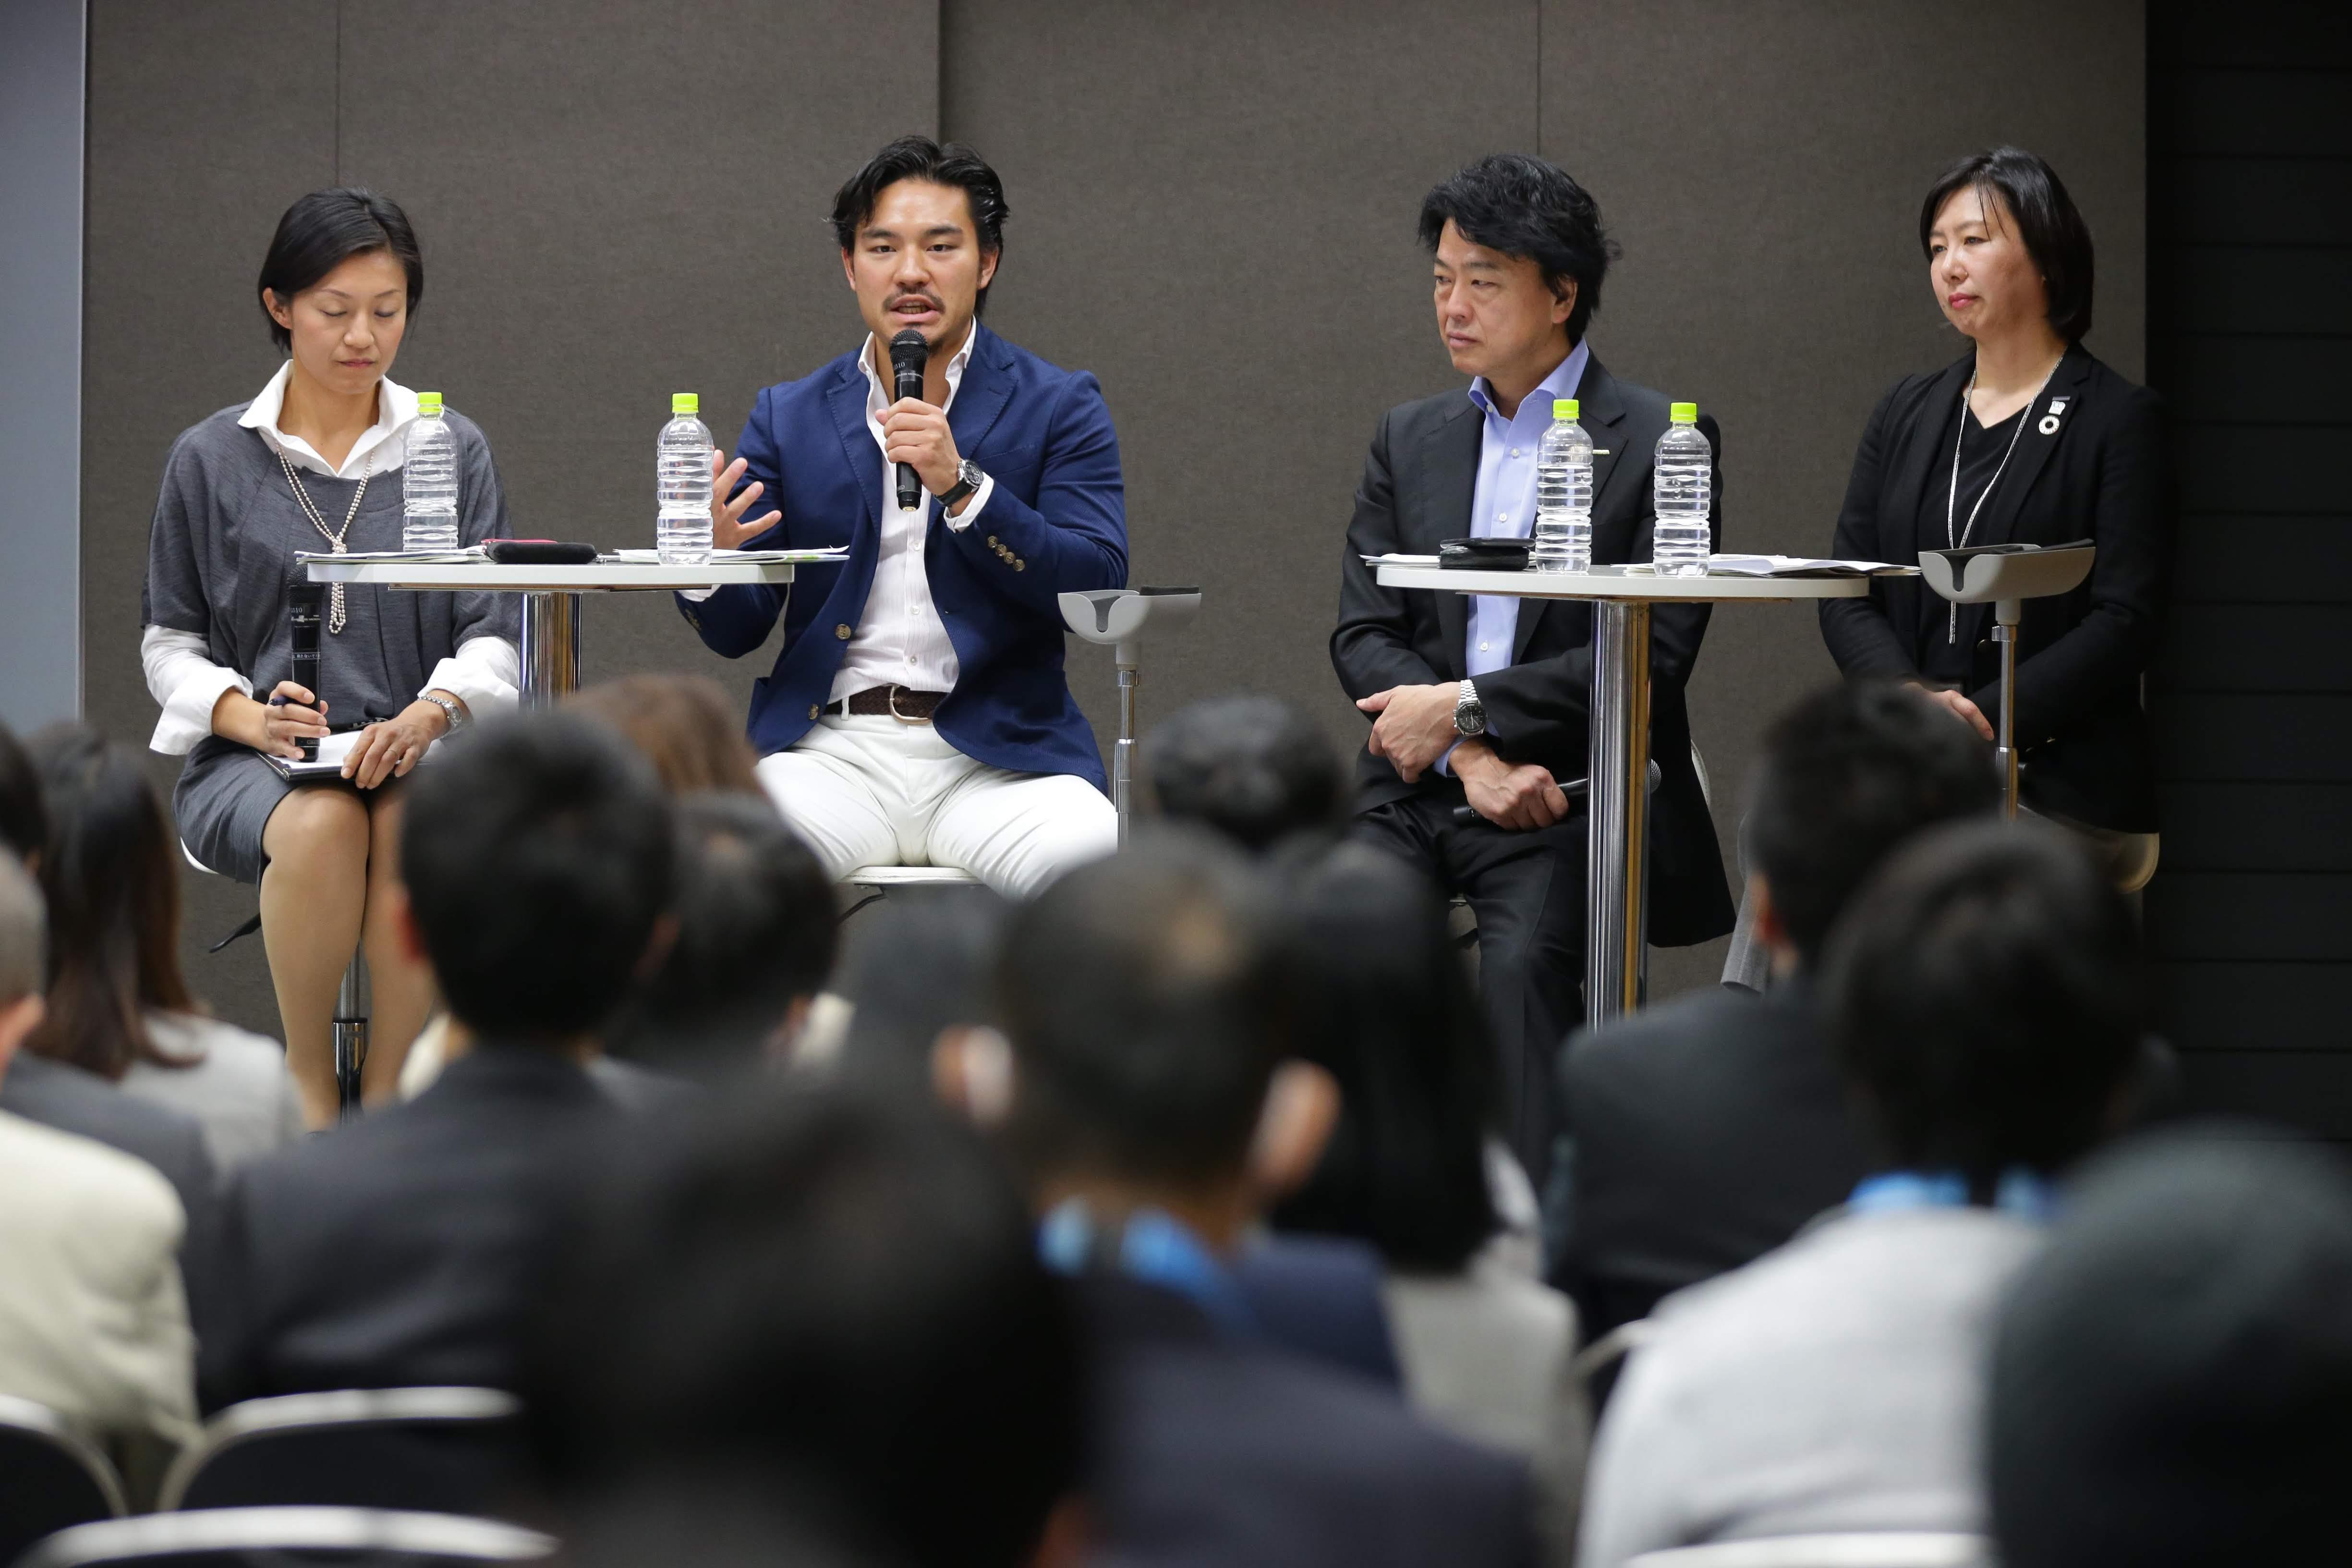 Seminar: Challenges for Sustainable and Cohesive Society / 持続的な共生社会実現へのチャレンジ